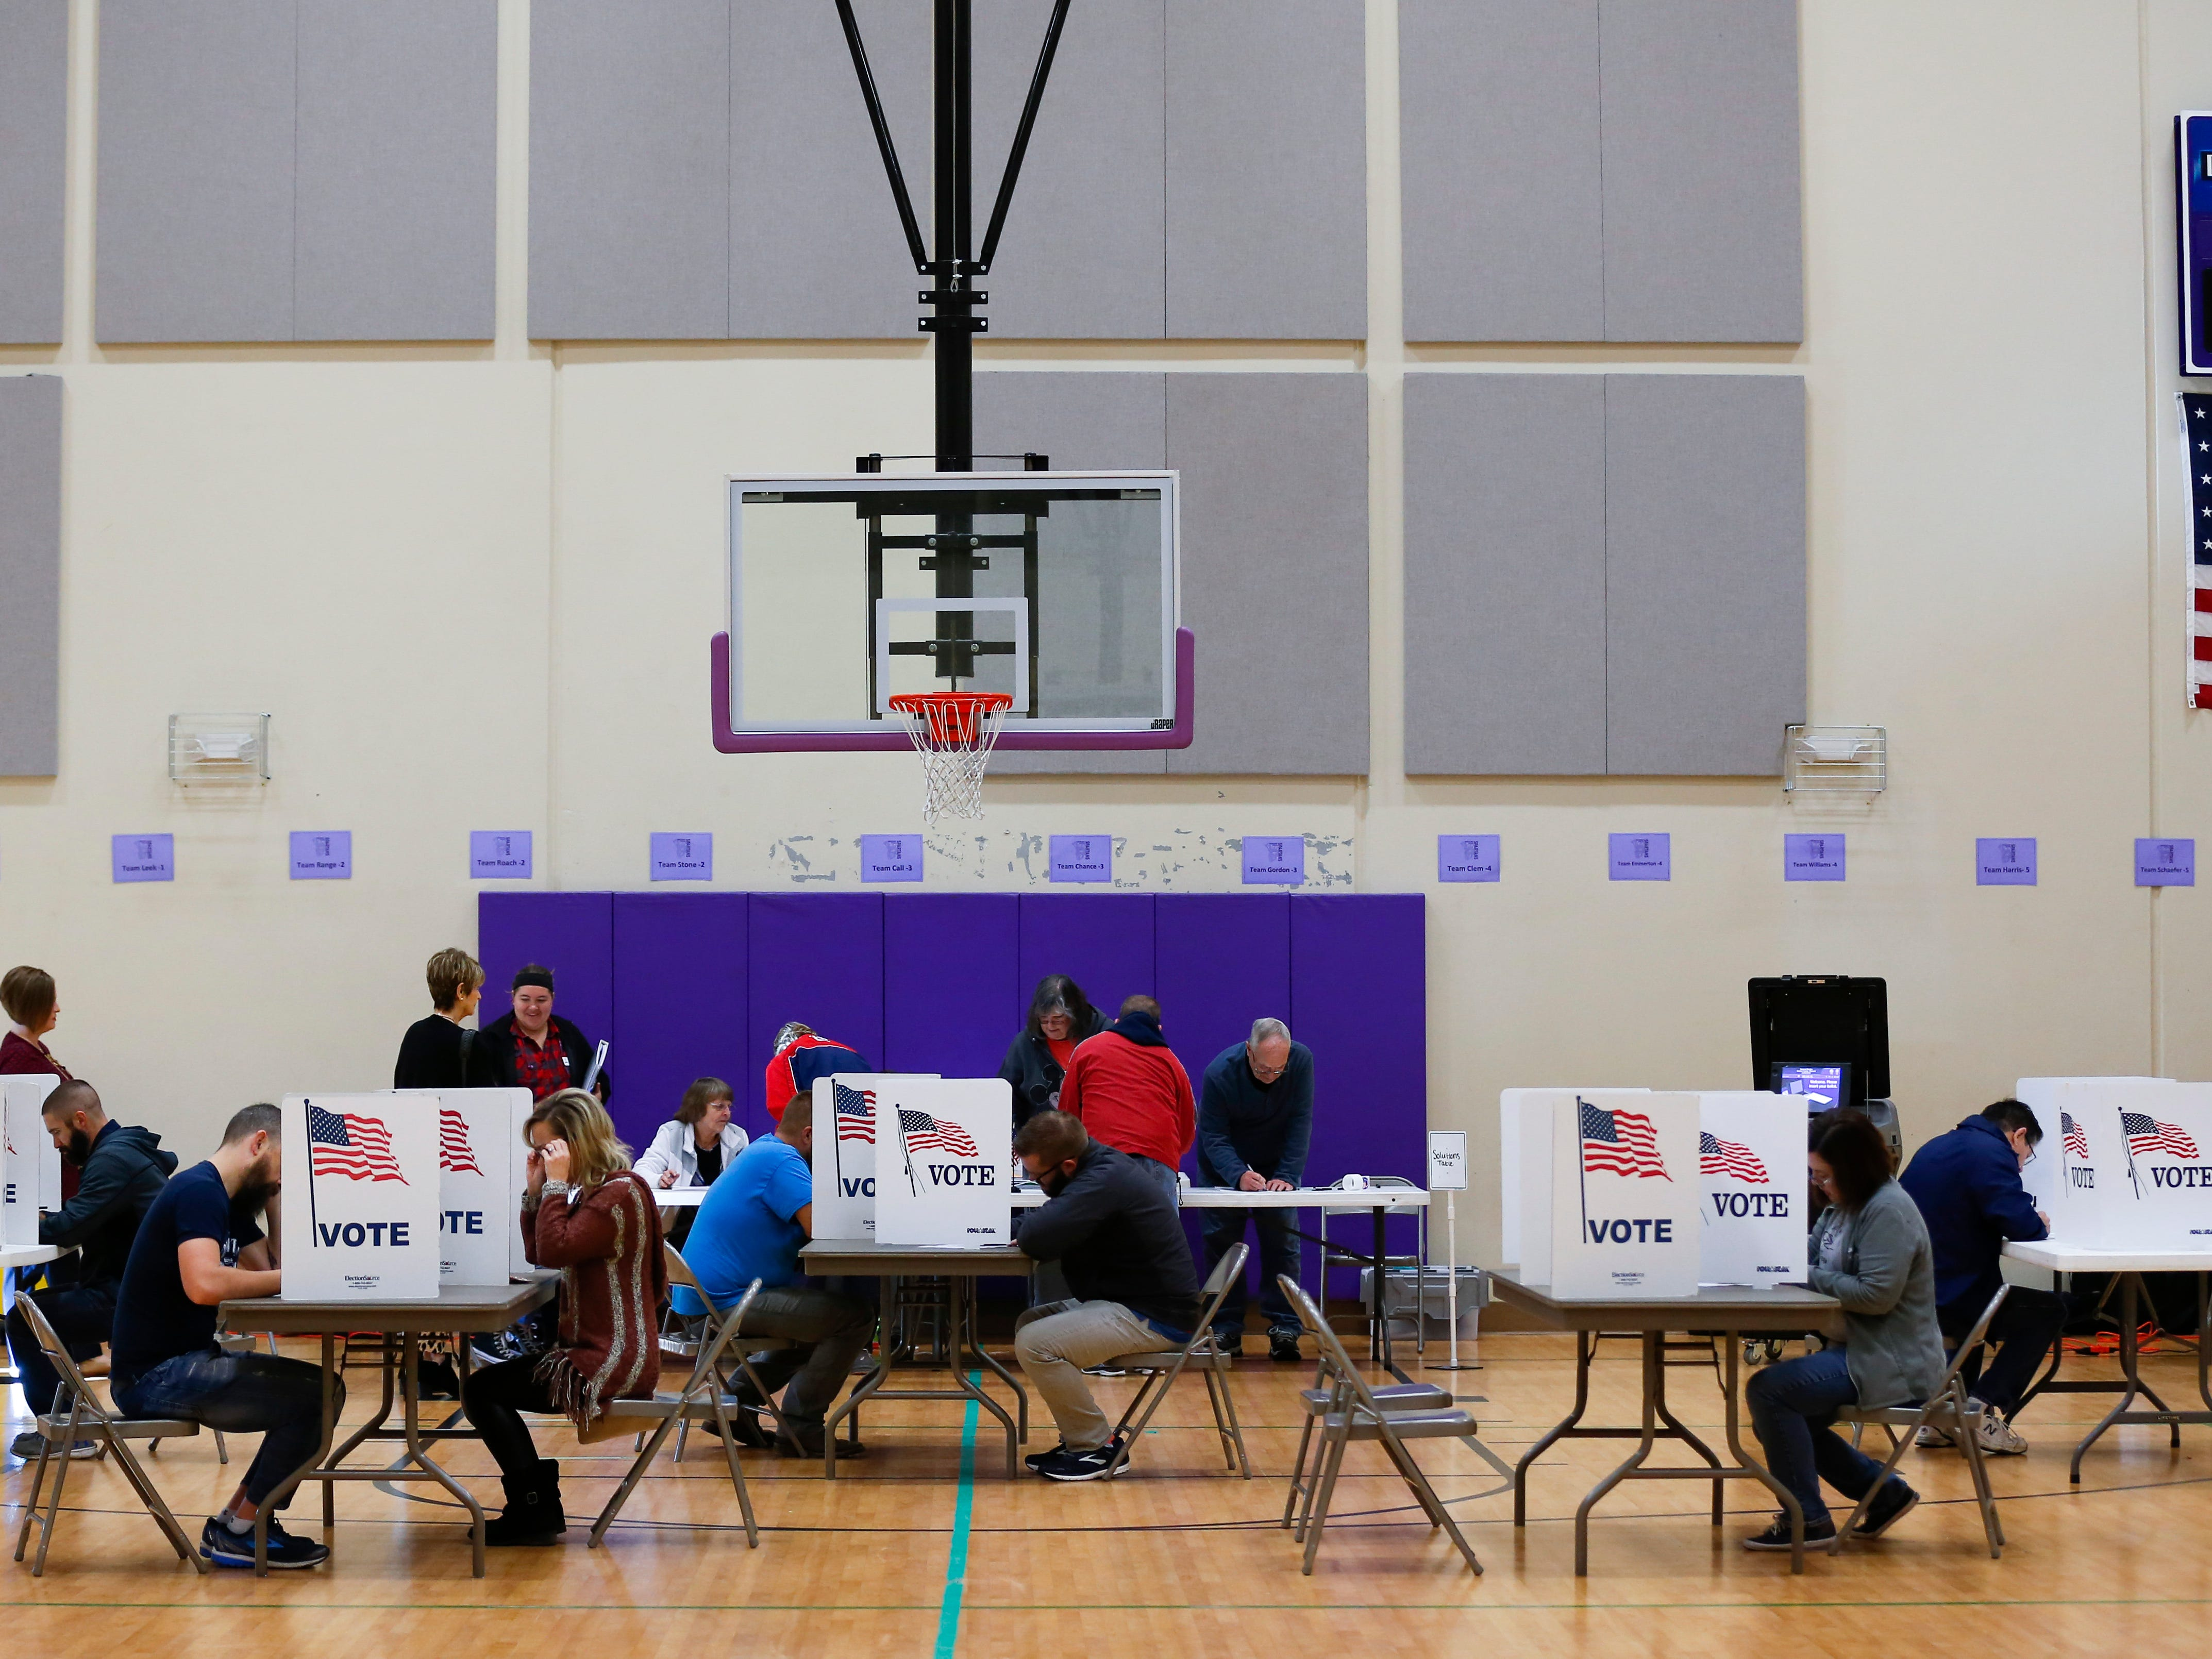 Voters fills out their ballots at Hickory Hills School polling location on Tuesday, Nov. 6, 2018.